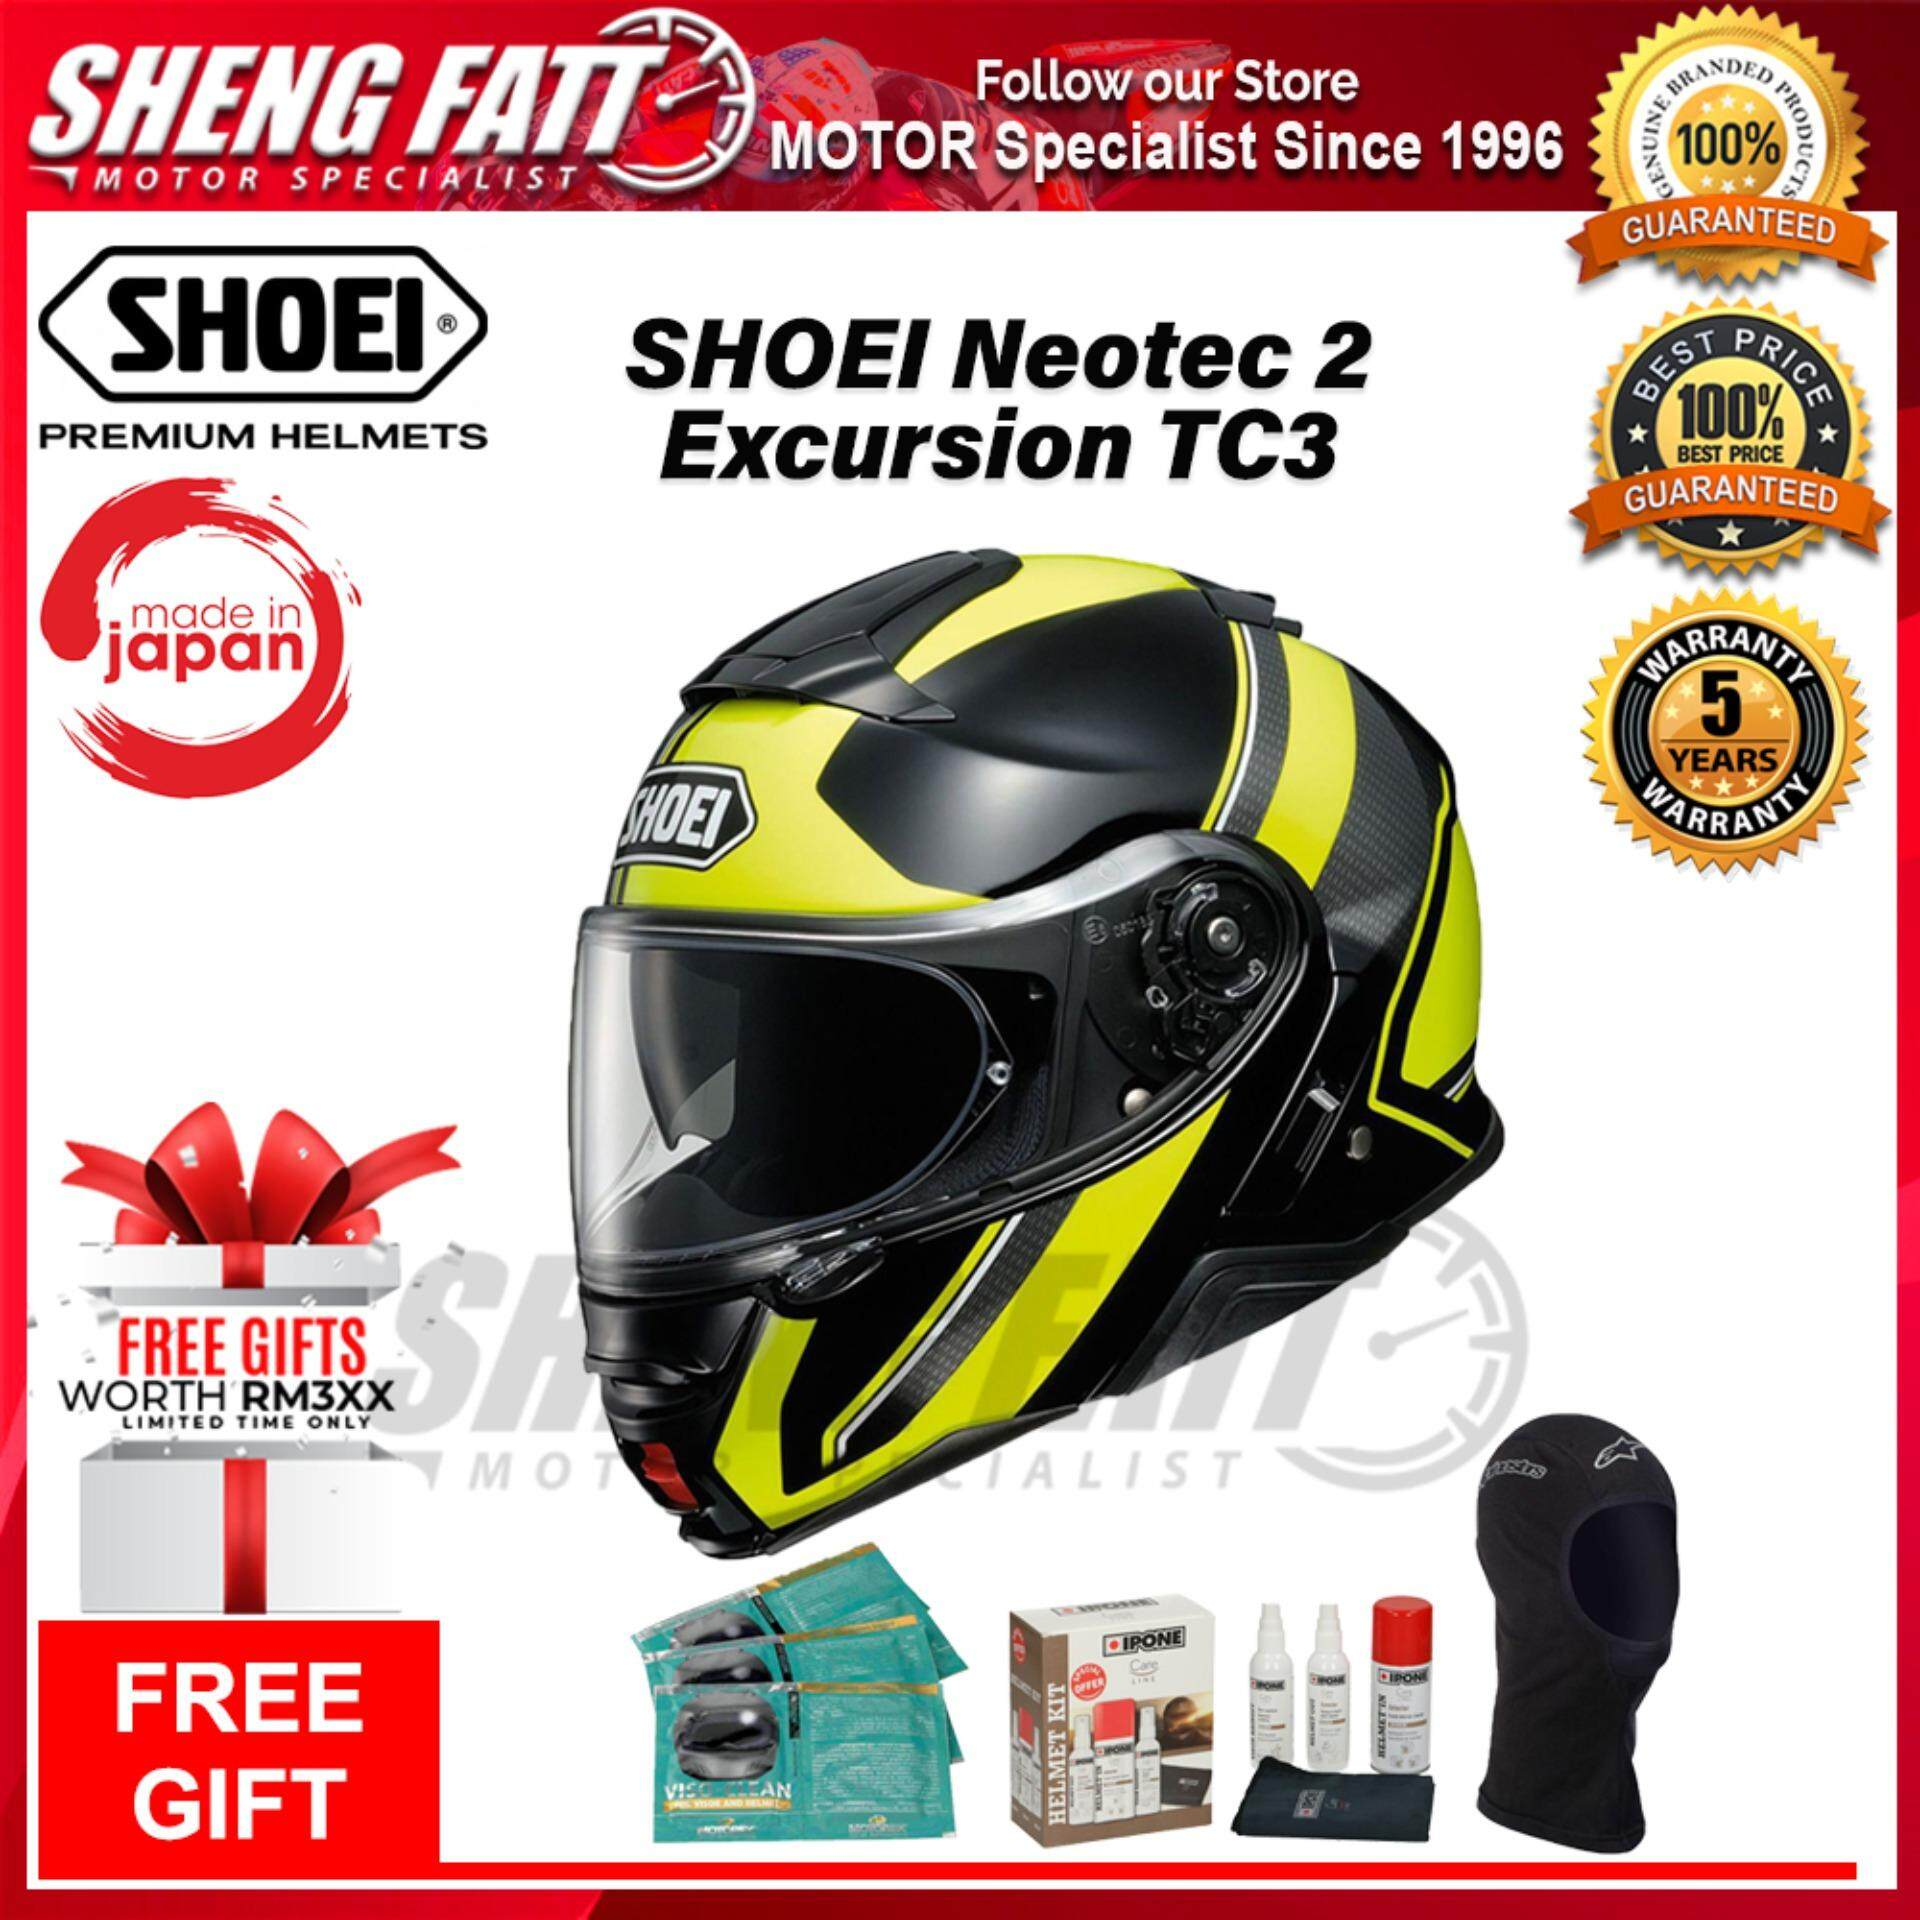 SHOEI NEOTEC 2 EXCURSION TC3 - FLIP FACE HELMET [ORIGINAL]